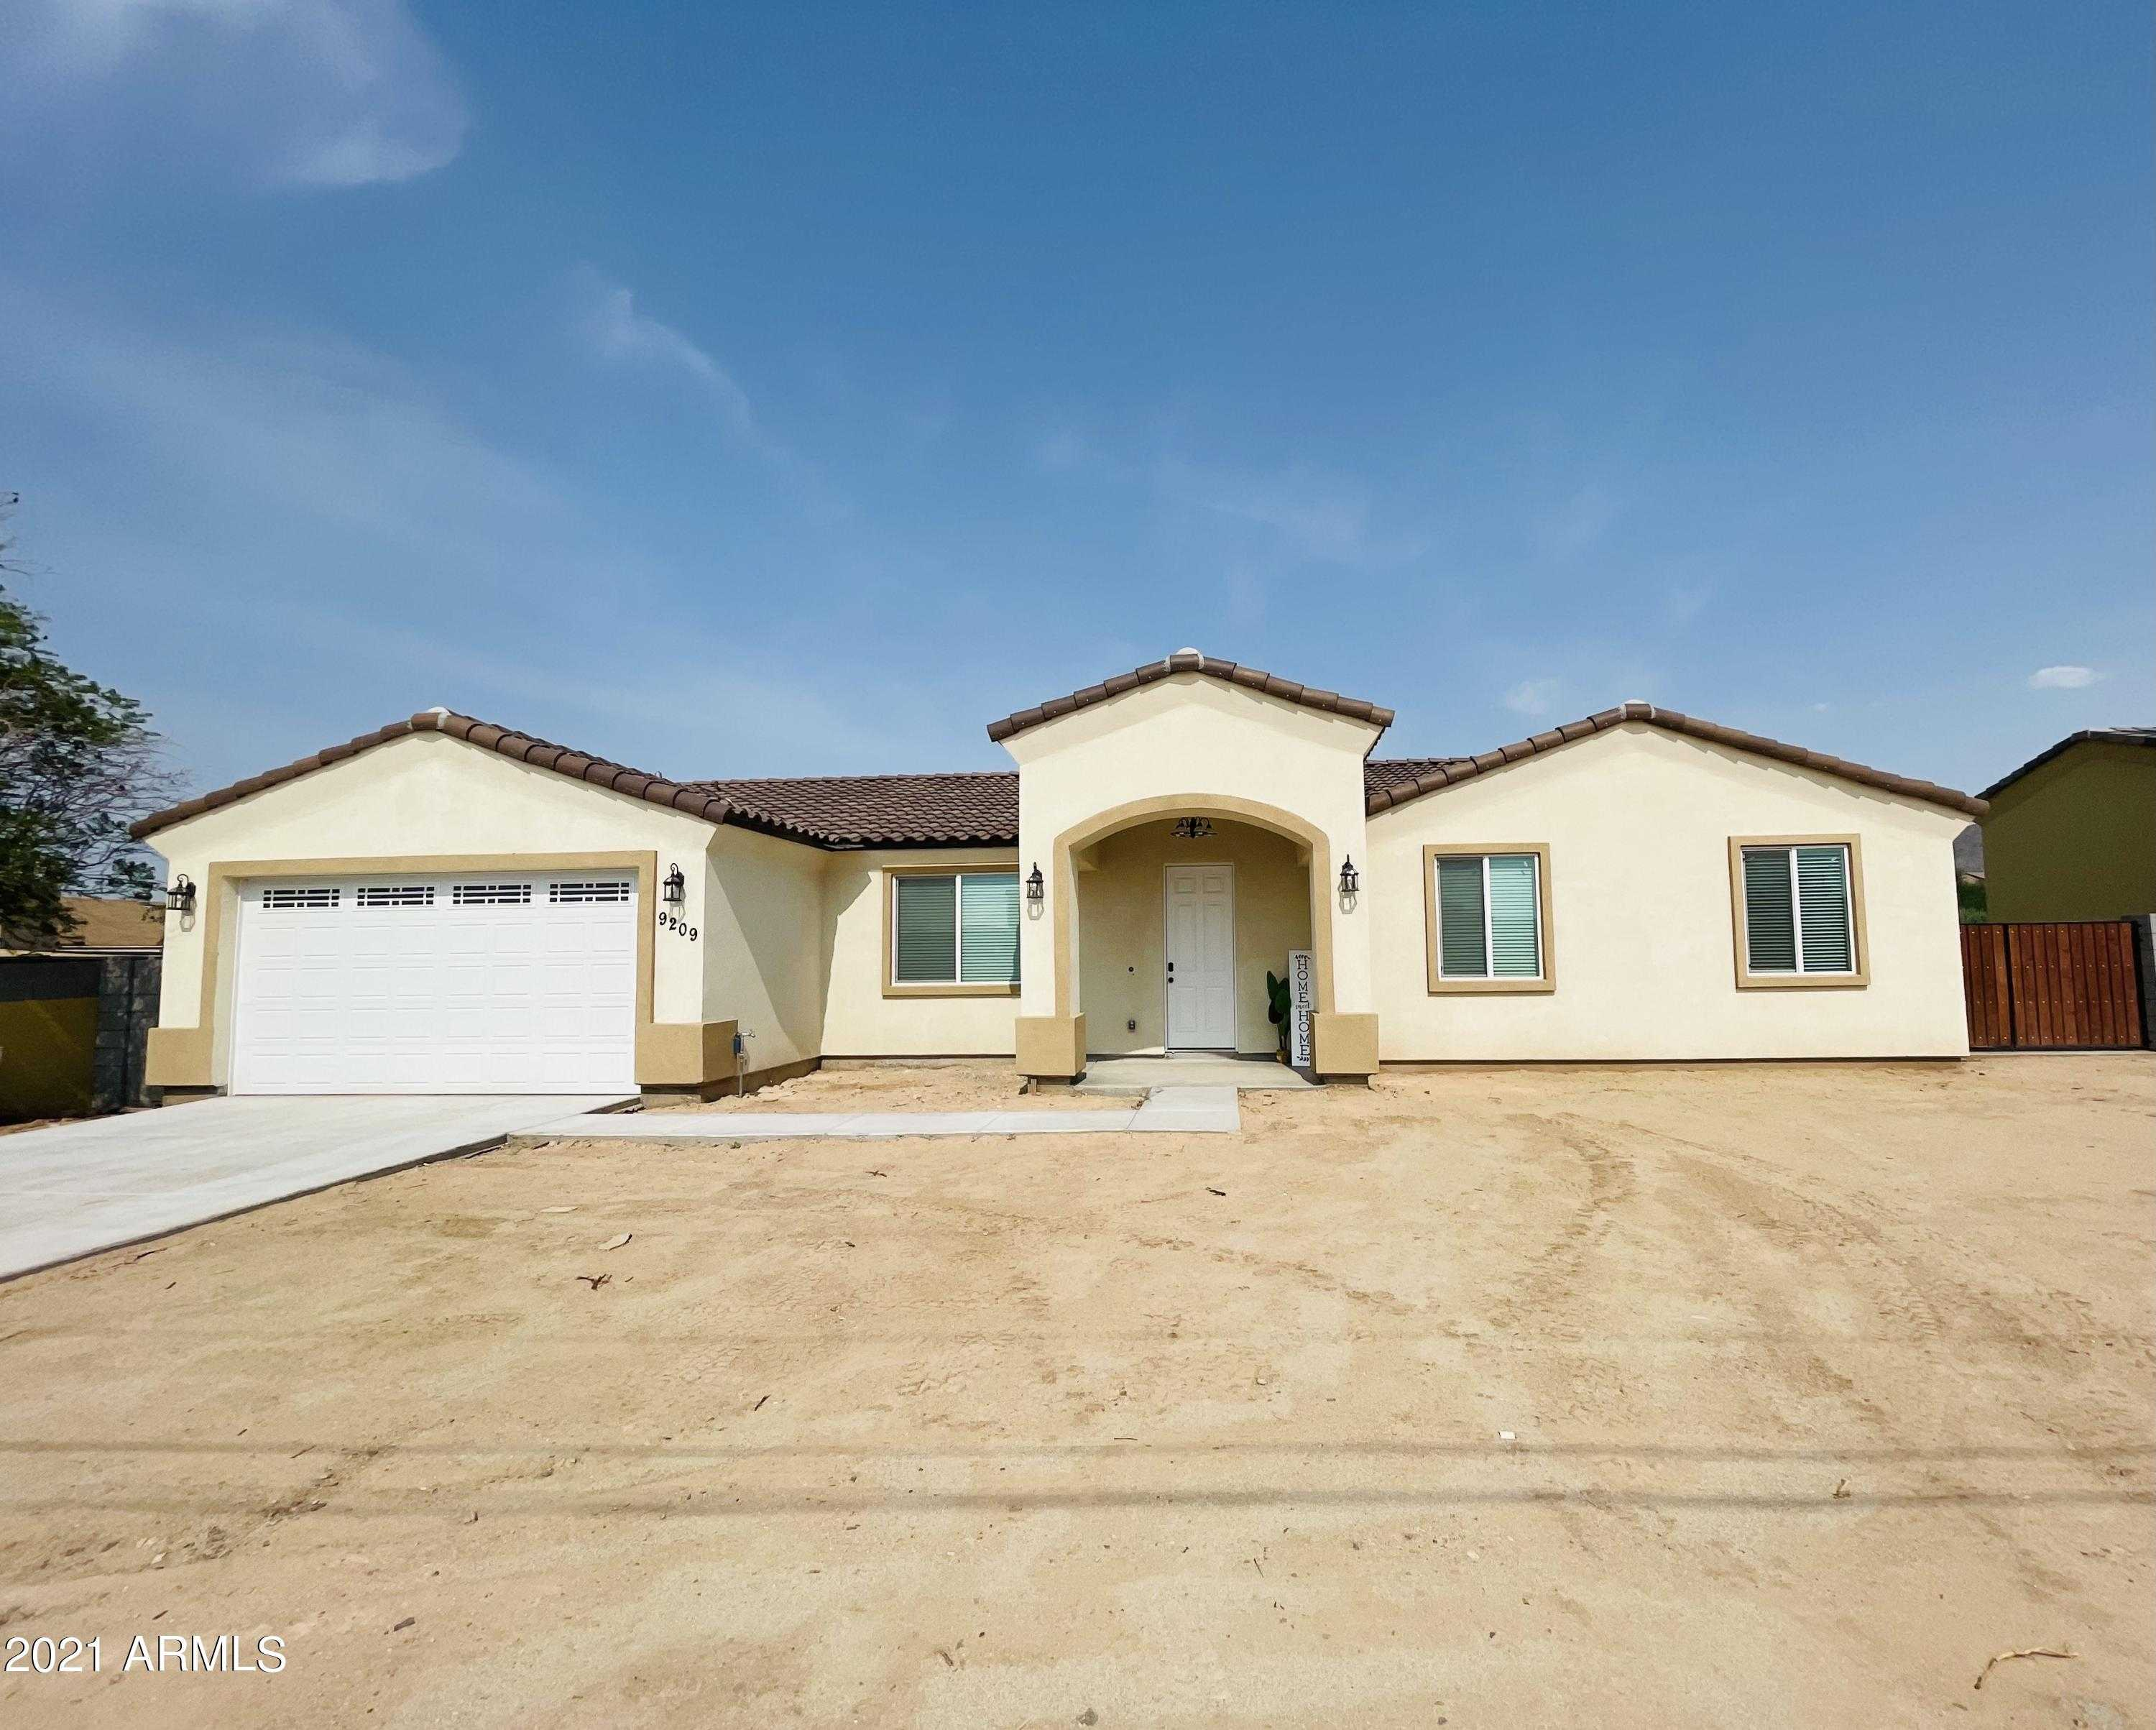 $450,000 - 4Br/2Ba - Home for Sale in N/a, Laveen